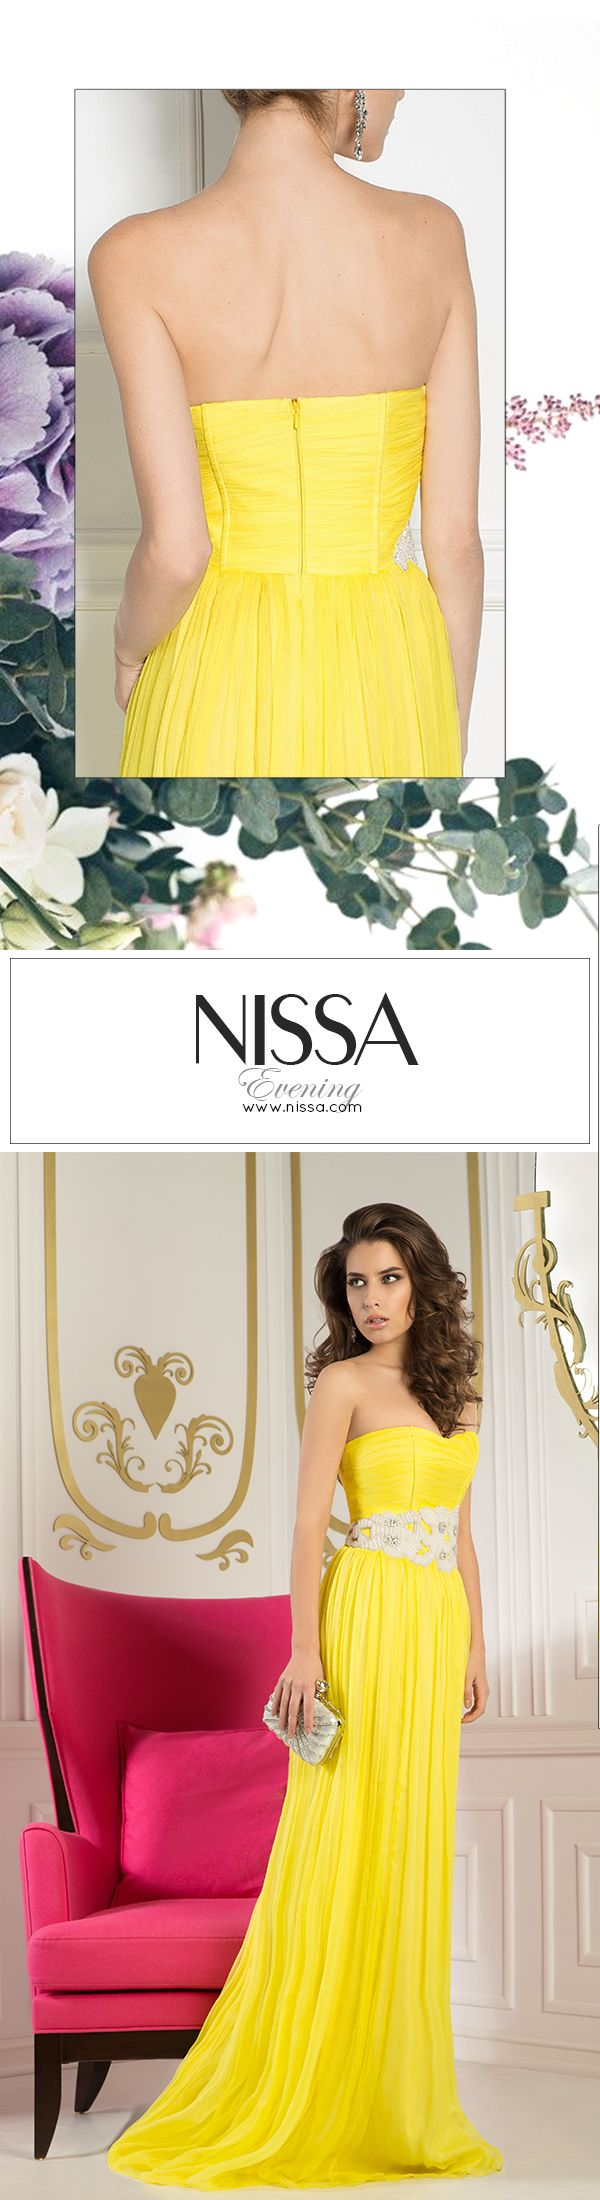 NISSA Evening Collection 2015  #‎nissa‬ ‪#‎dress‬ ‪#‎maxi‬ # ‪#‎evening‬ ‪#‎ss2015‬ ‪#‎fashion‬ ‪#‎style‬ ‪#‎look‬ ‪#‎gorgeous‬ ‪#‎long‬ ‪#‎yellow‬